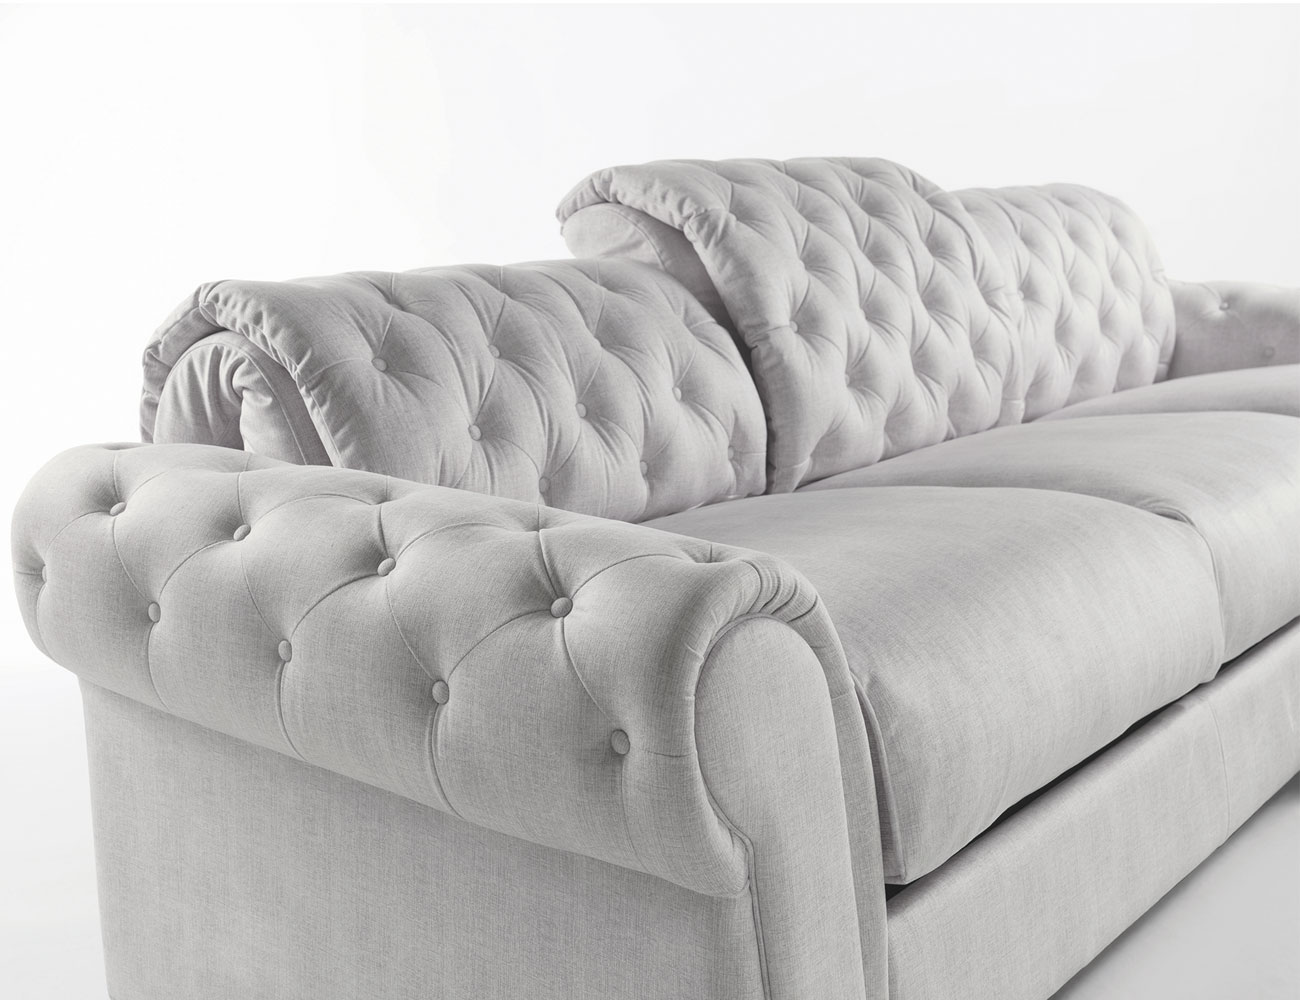 Sofa chaiselongue gran lujo decorativo capitone blanco tela 114